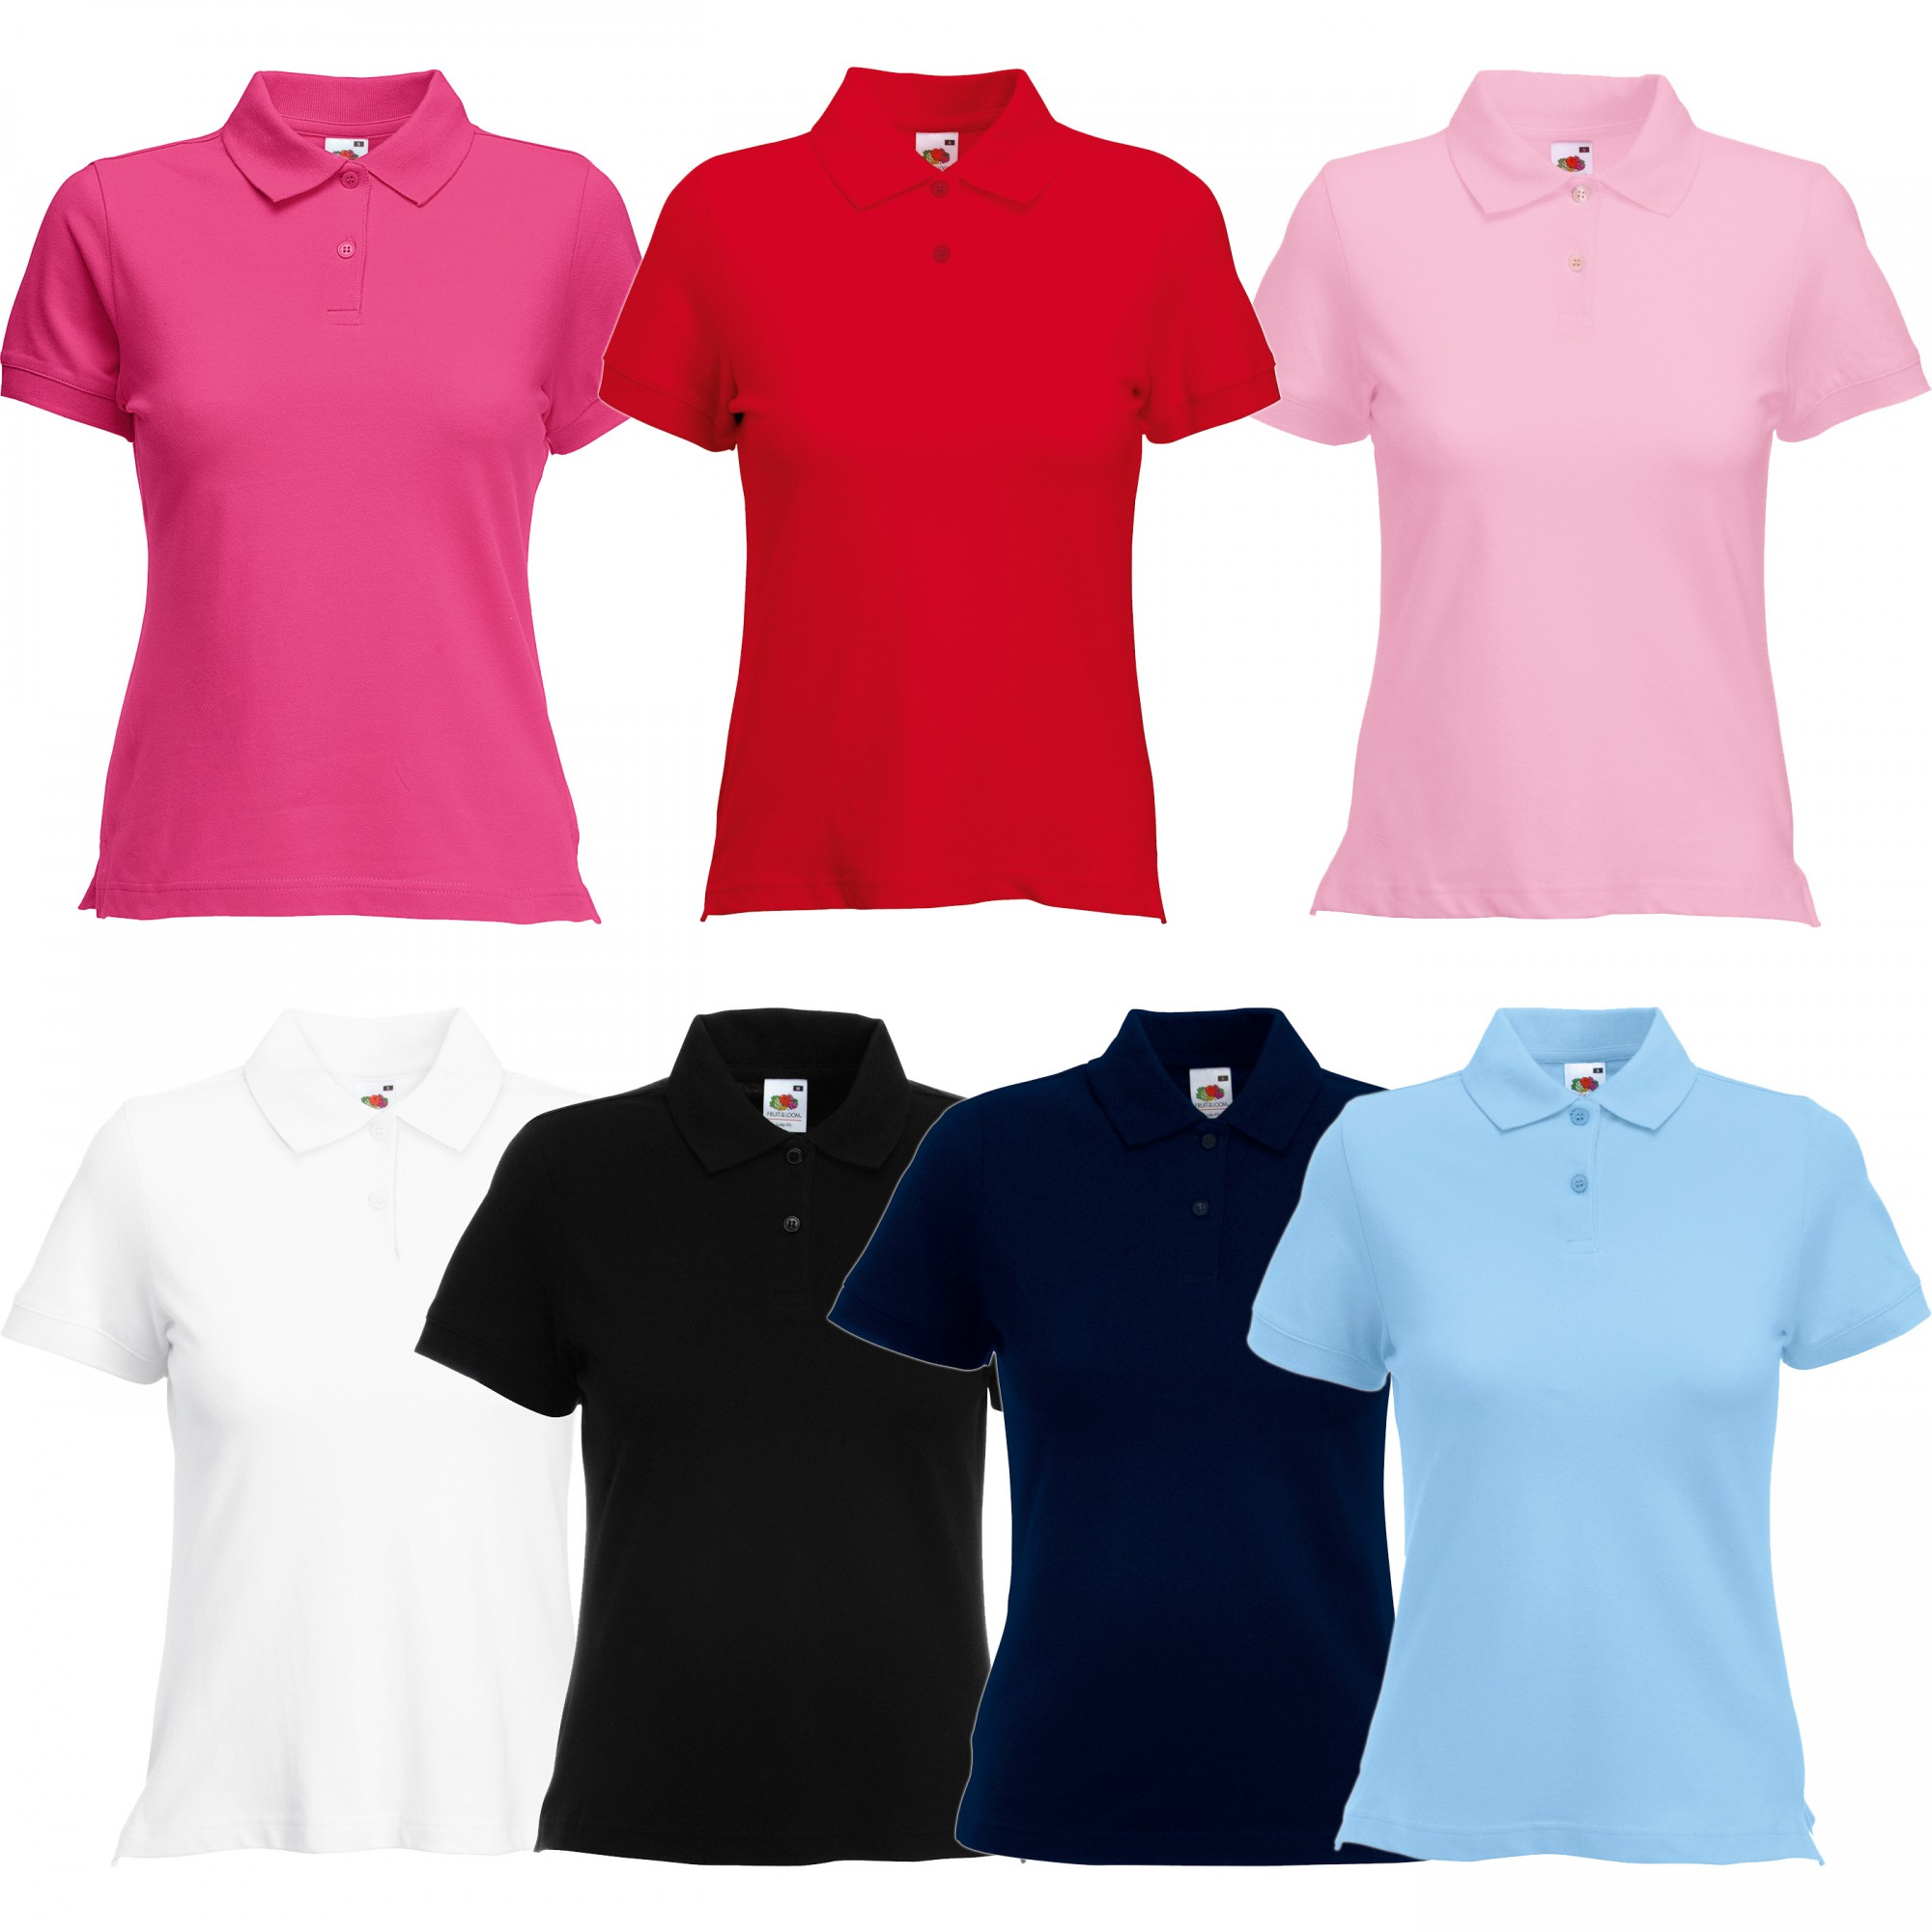 Fruit of the Loom: Lady-Fit Polo 63-560-0